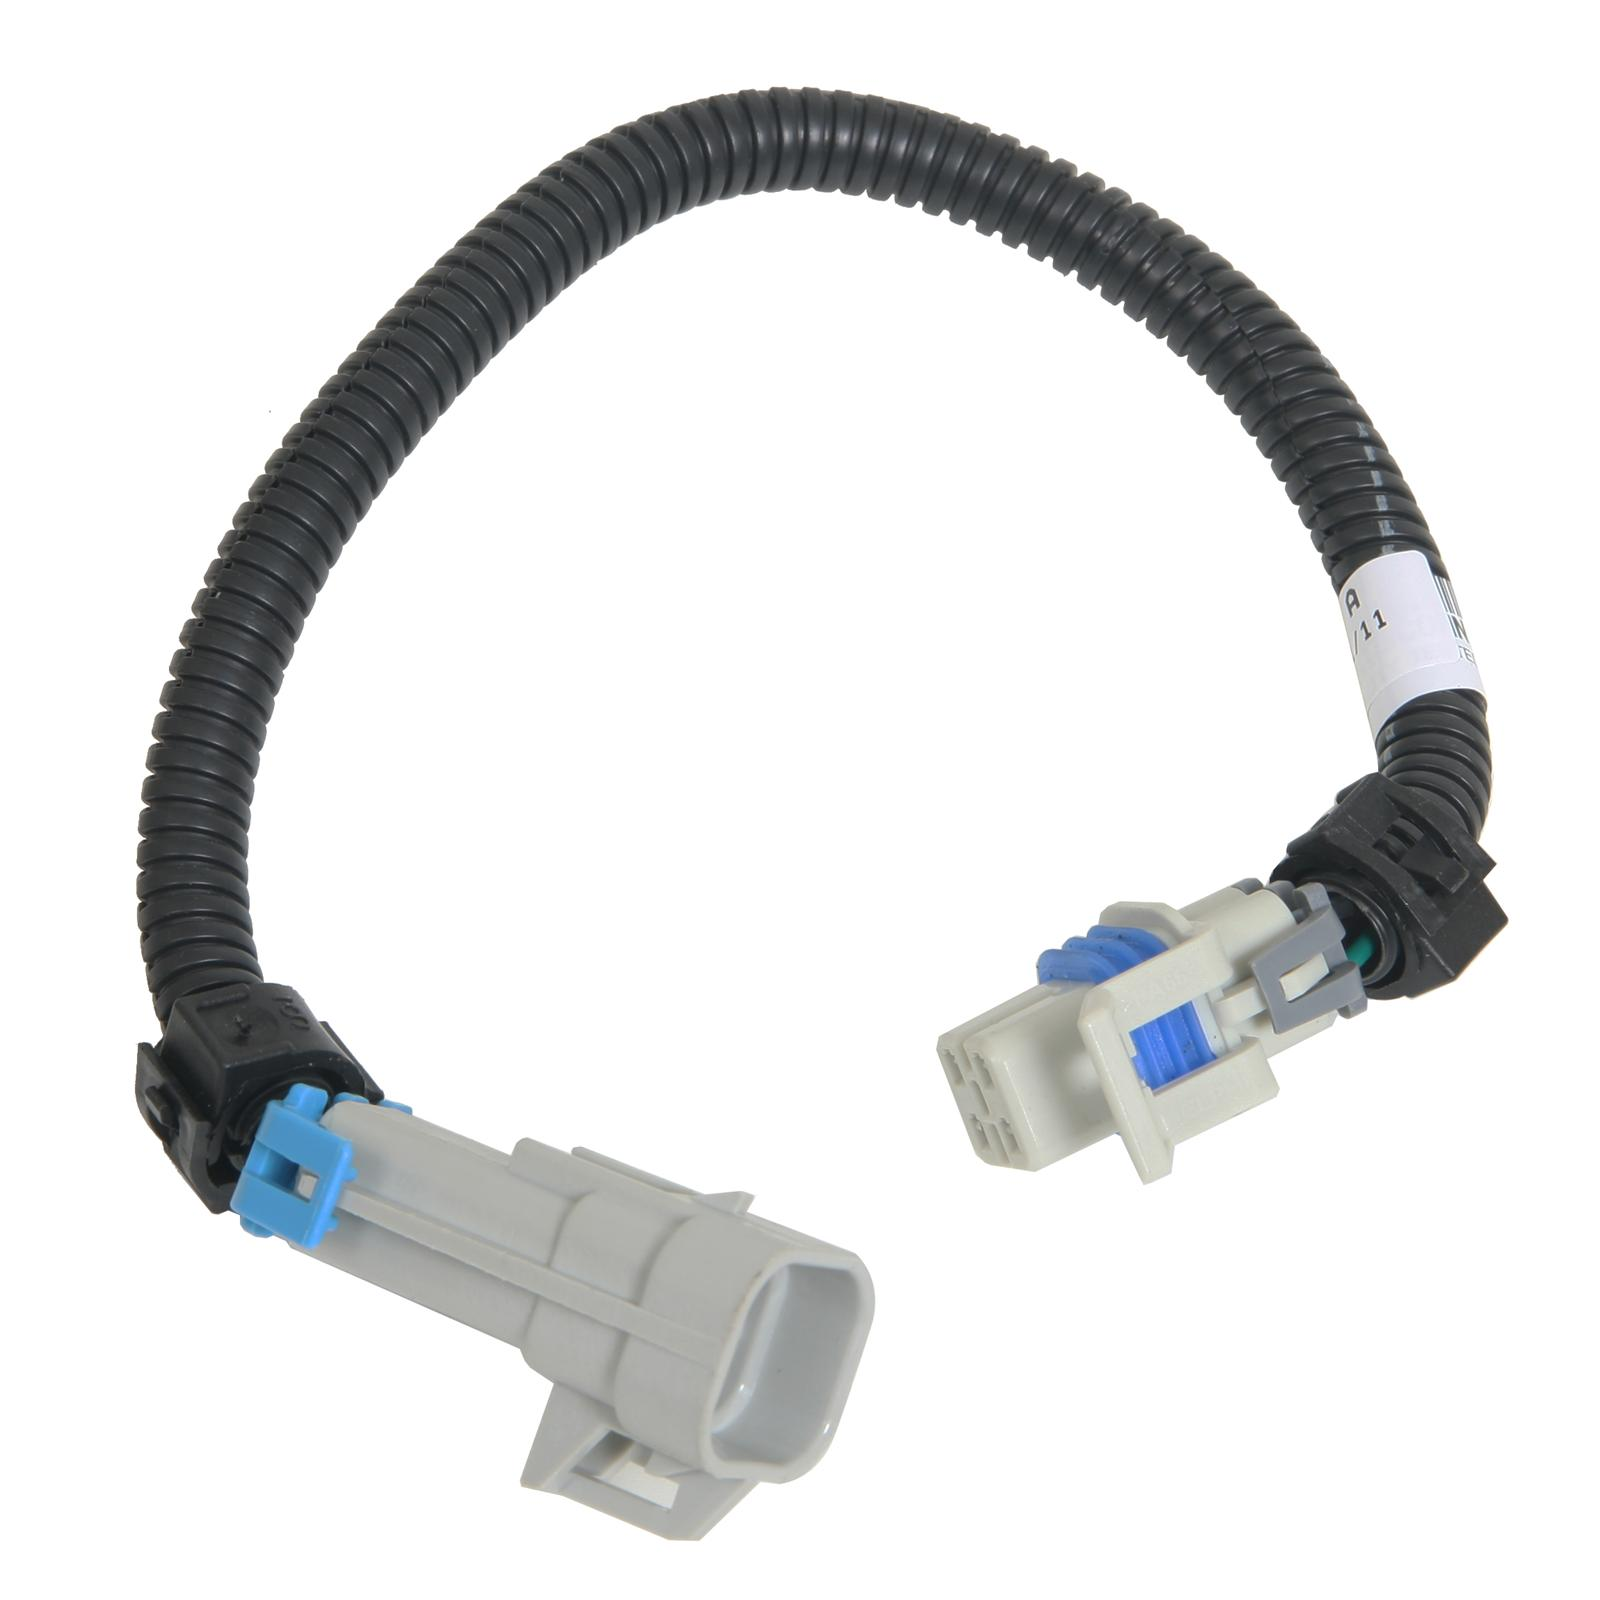 hight resolution of caspers electronics oxygen sensor extension harnesses 109004 free shipping on orders over 99 at summit racing